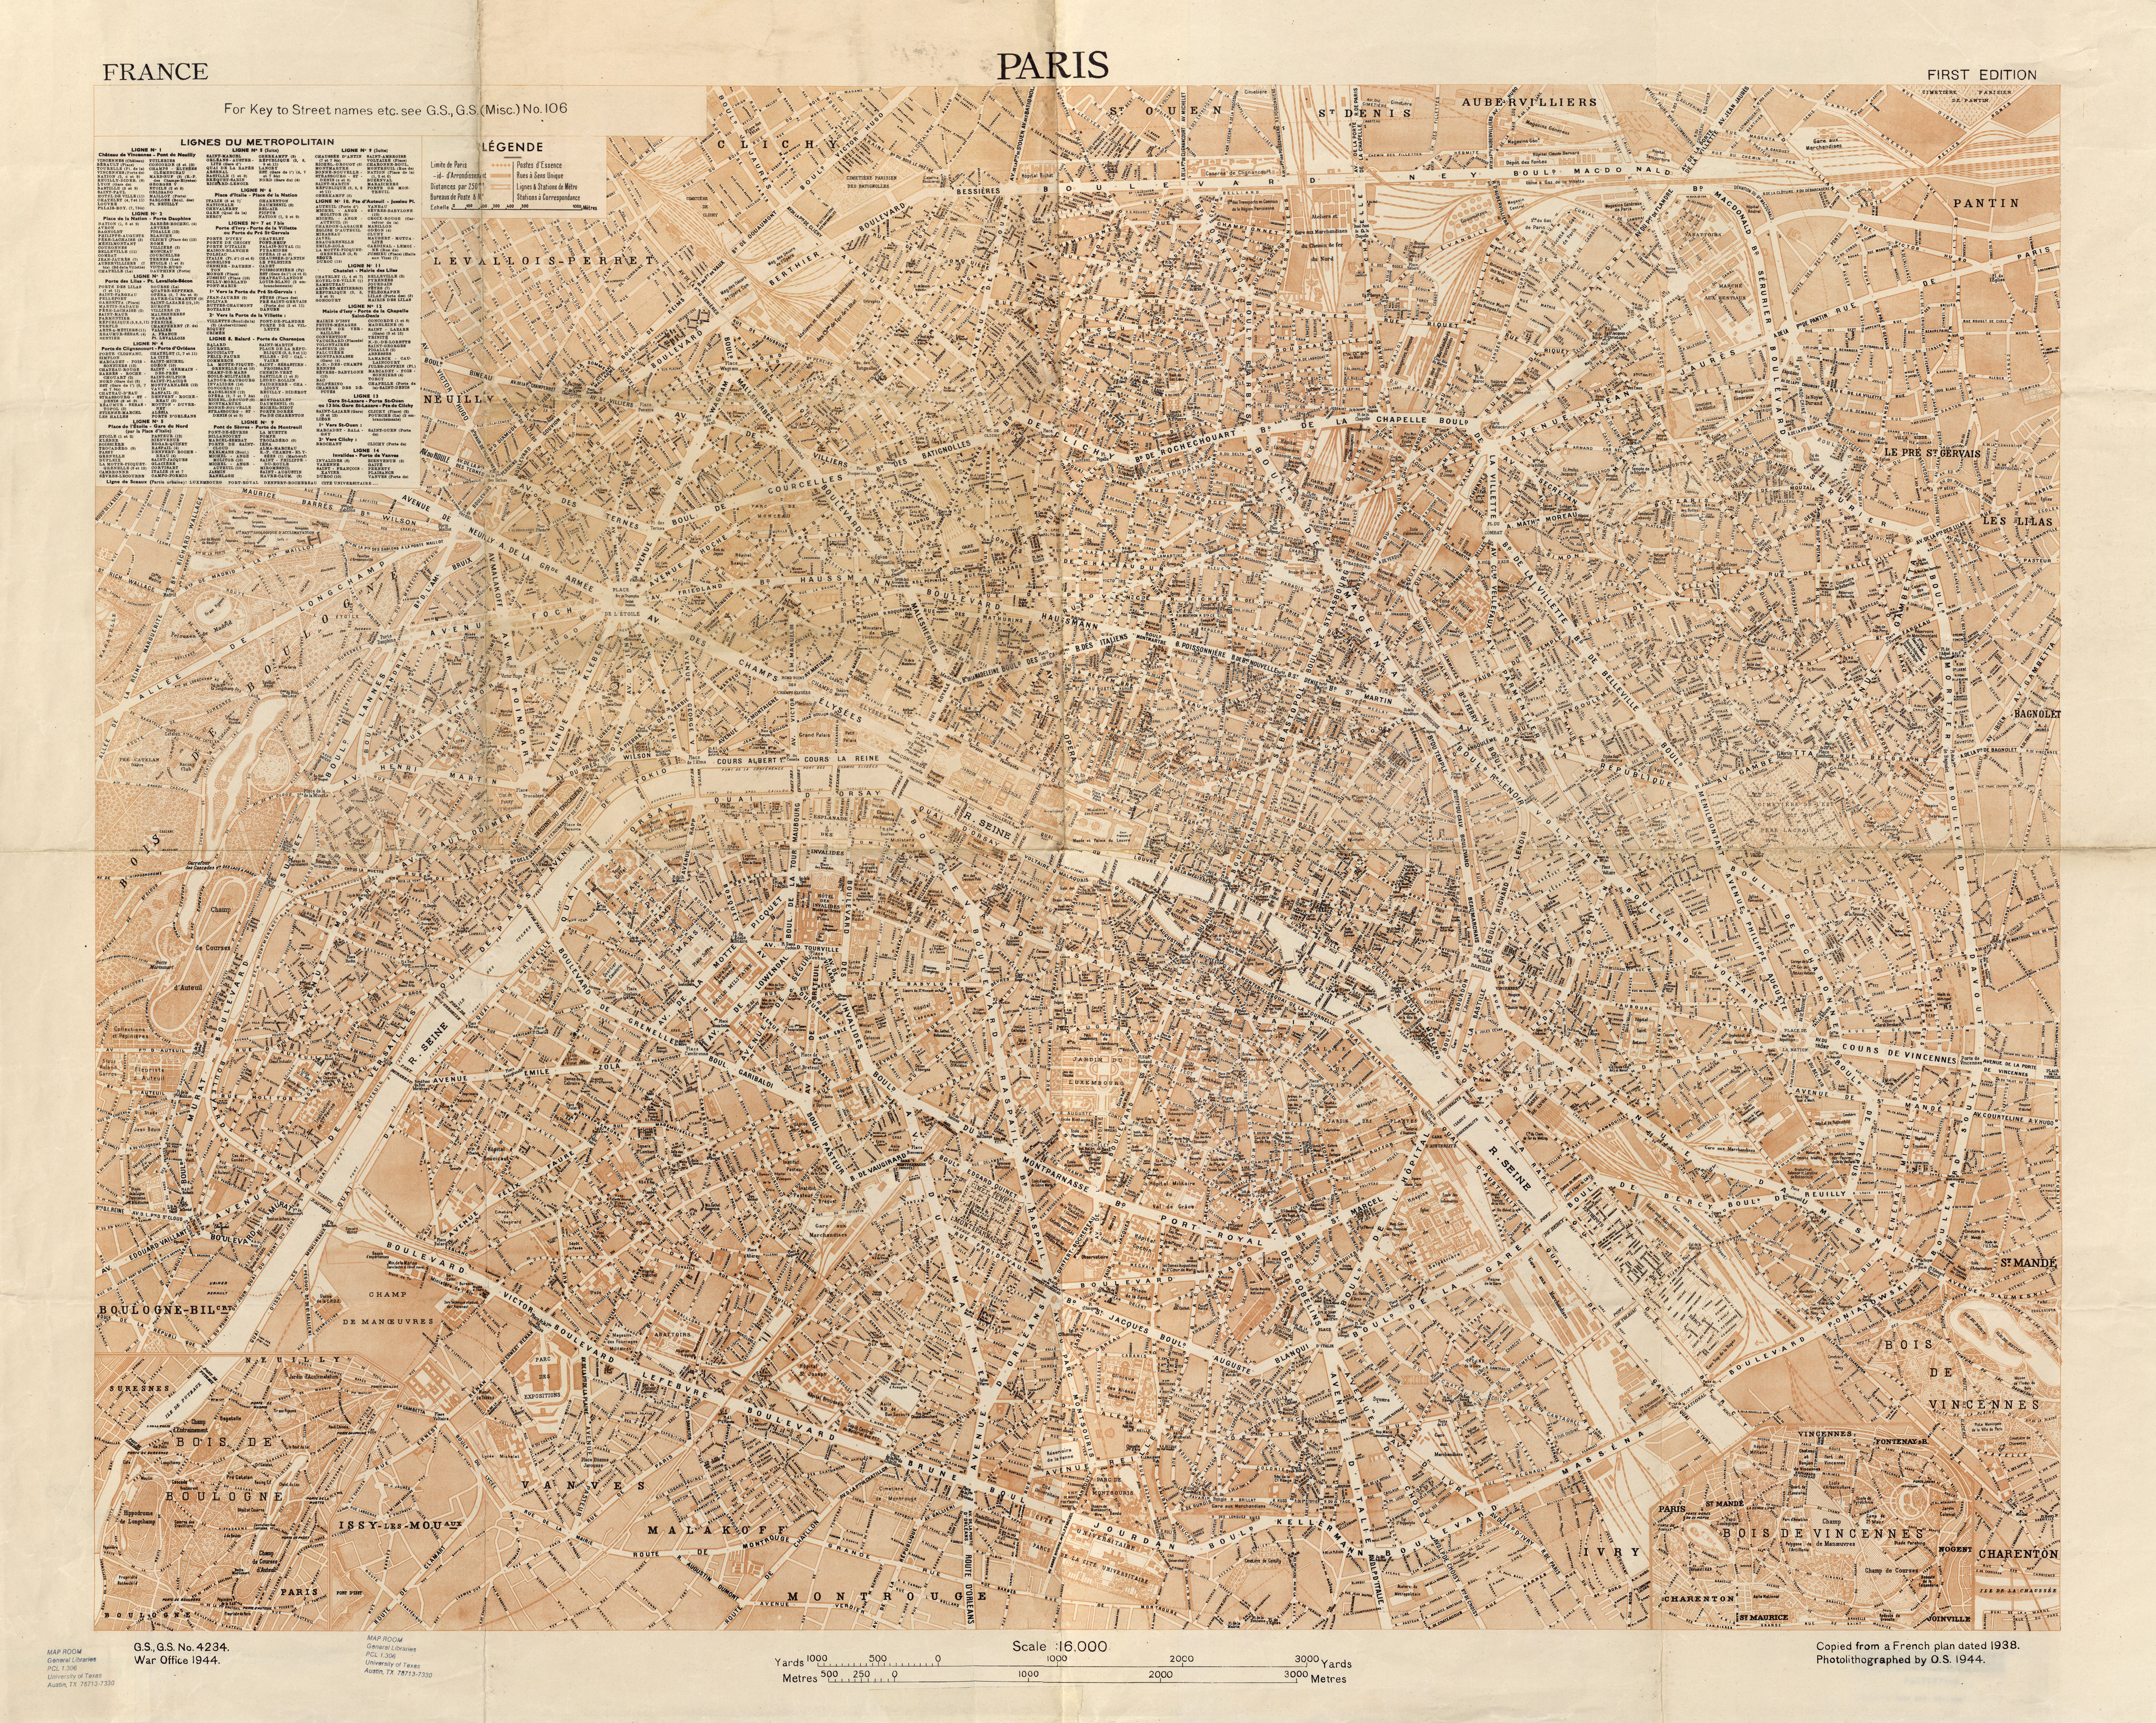 File:U.S. Army Map Service, Paris 1944 - The University of Texas ...